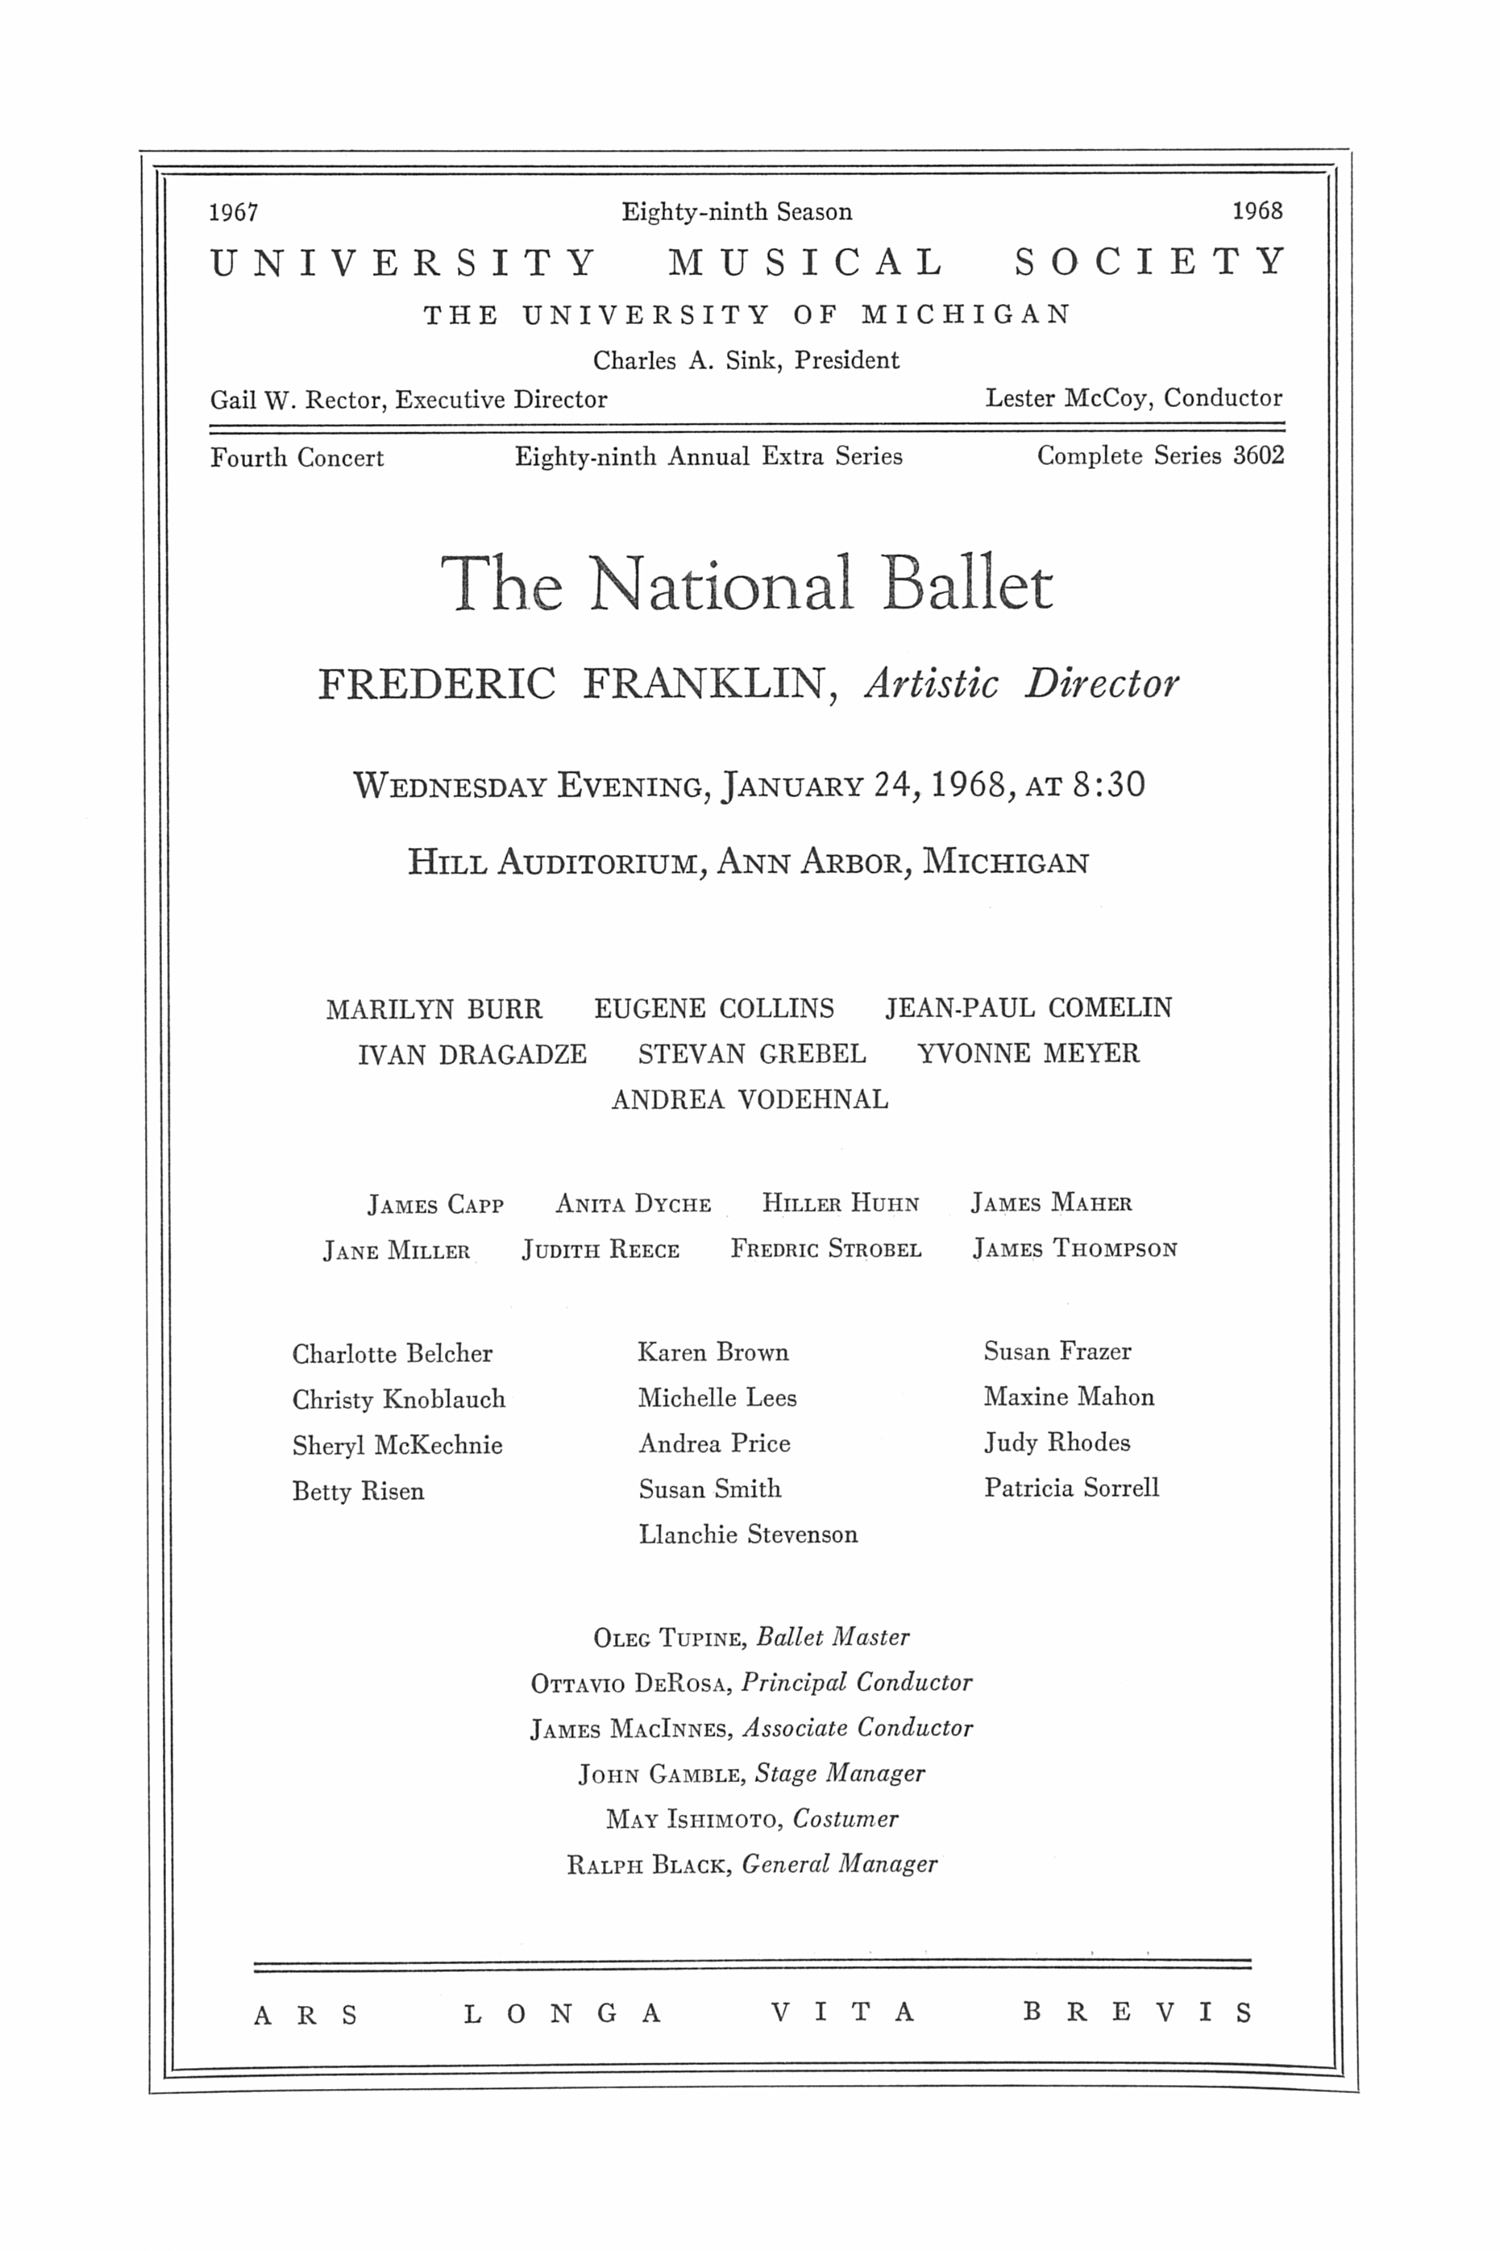 UMS Concert Program, January 24,1968: The National Ballet -- Frederic Franklin image